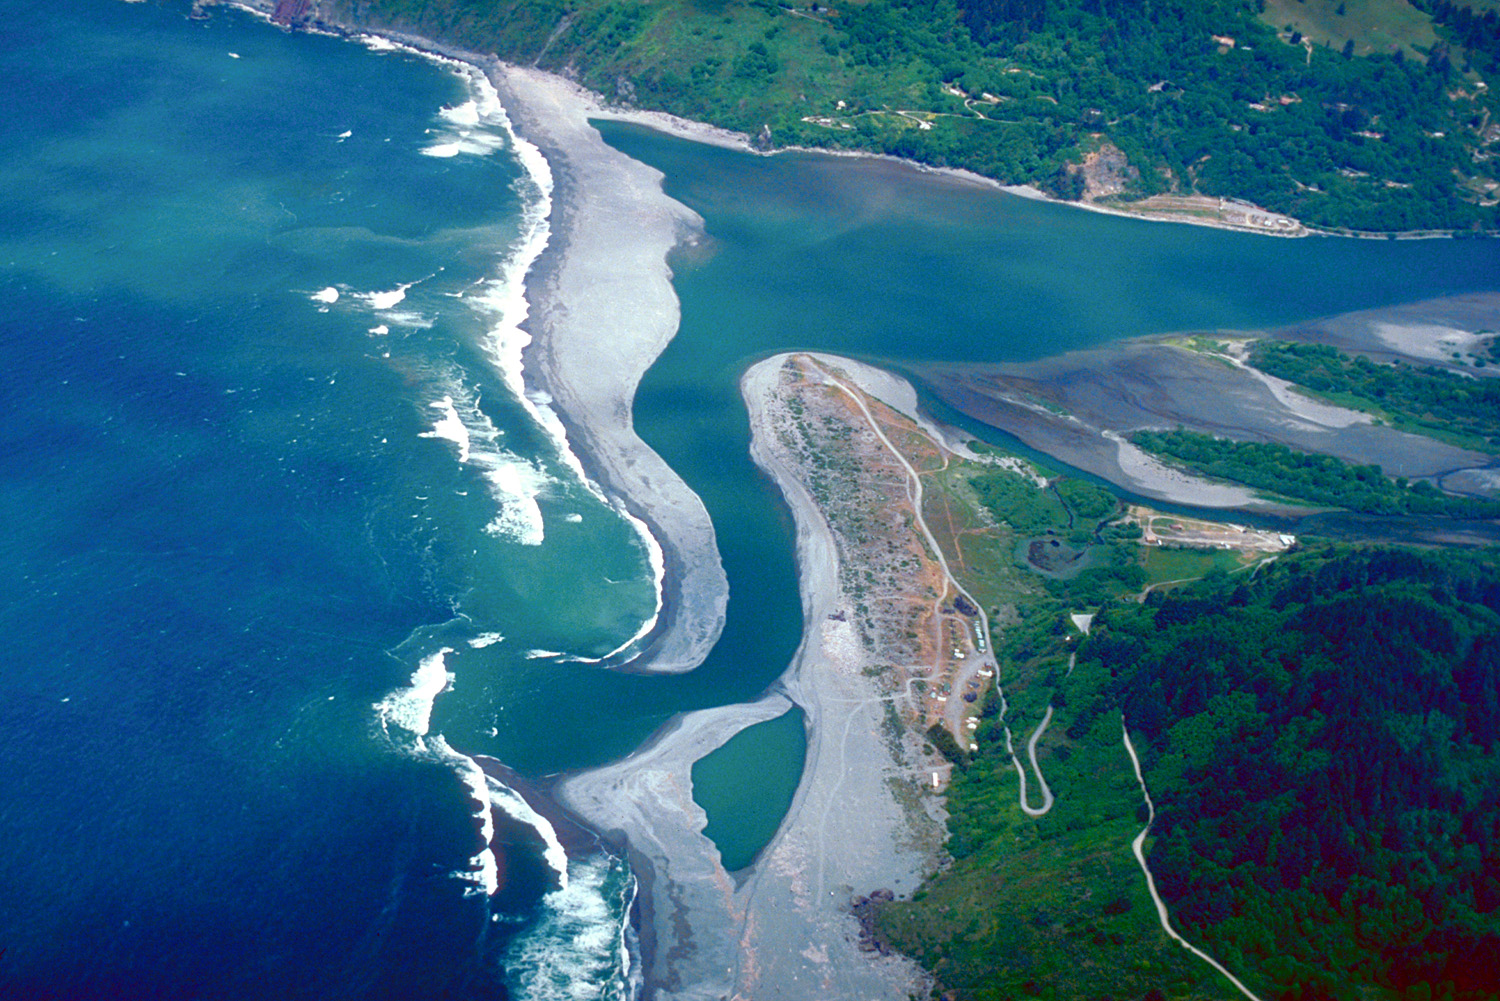 Description Klamath River mouth aerial view.jpg